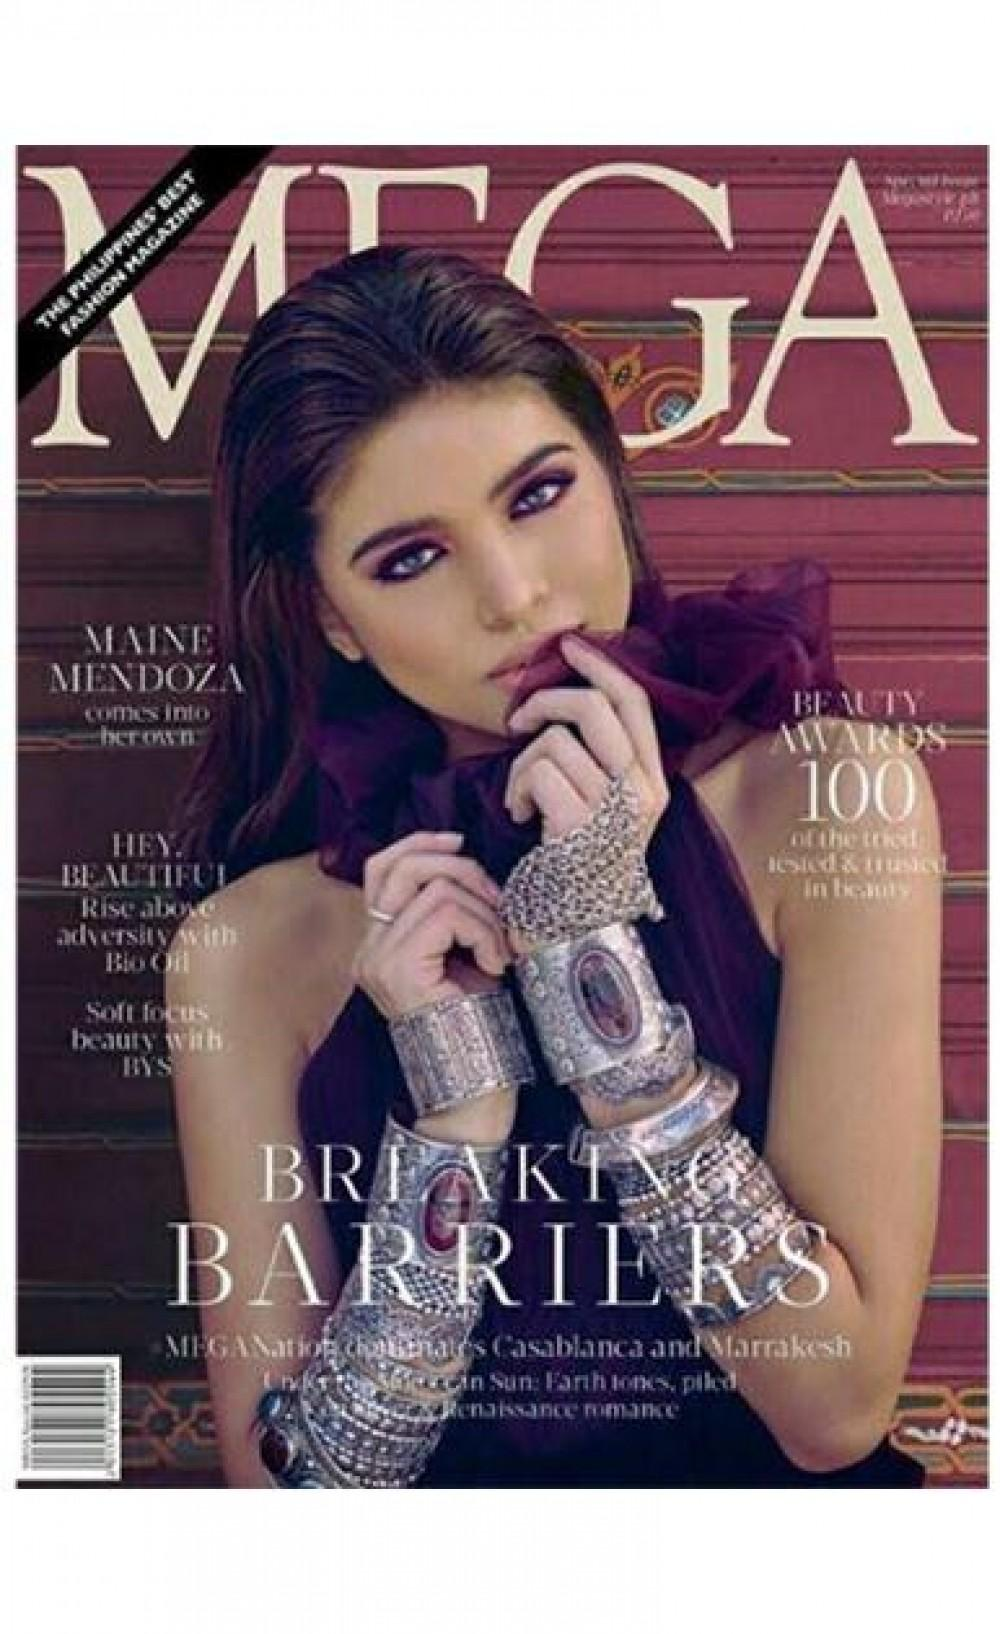 Look Enchanting Cover Of Aldub For A Fashion Magazine Out This October Showbiz News Gma